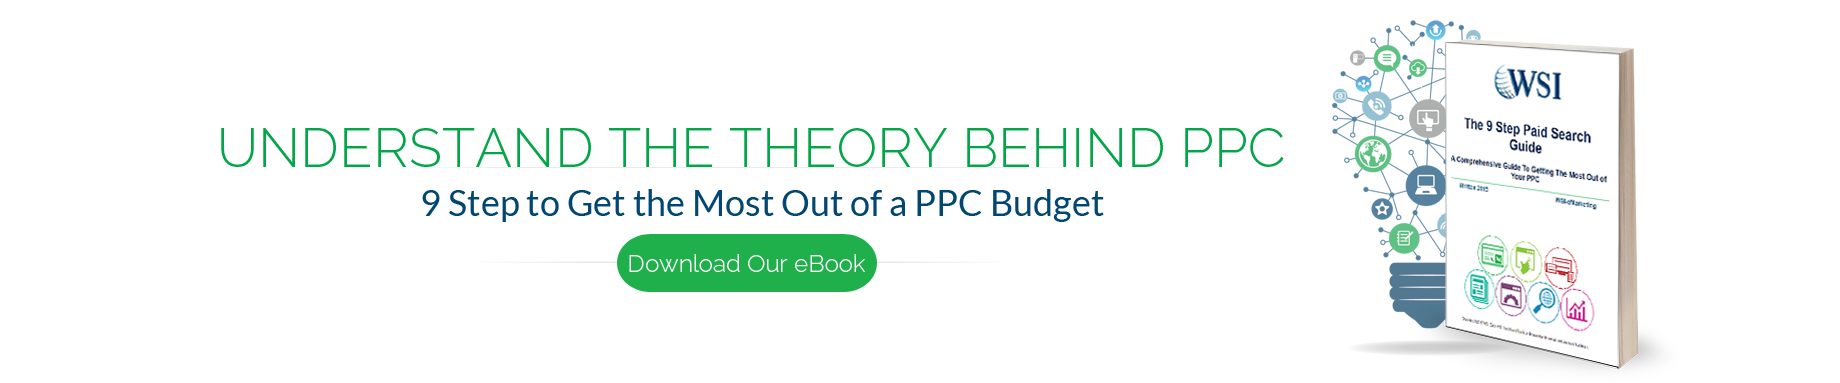 9 Step to Get the Most Out of a PPC Budget